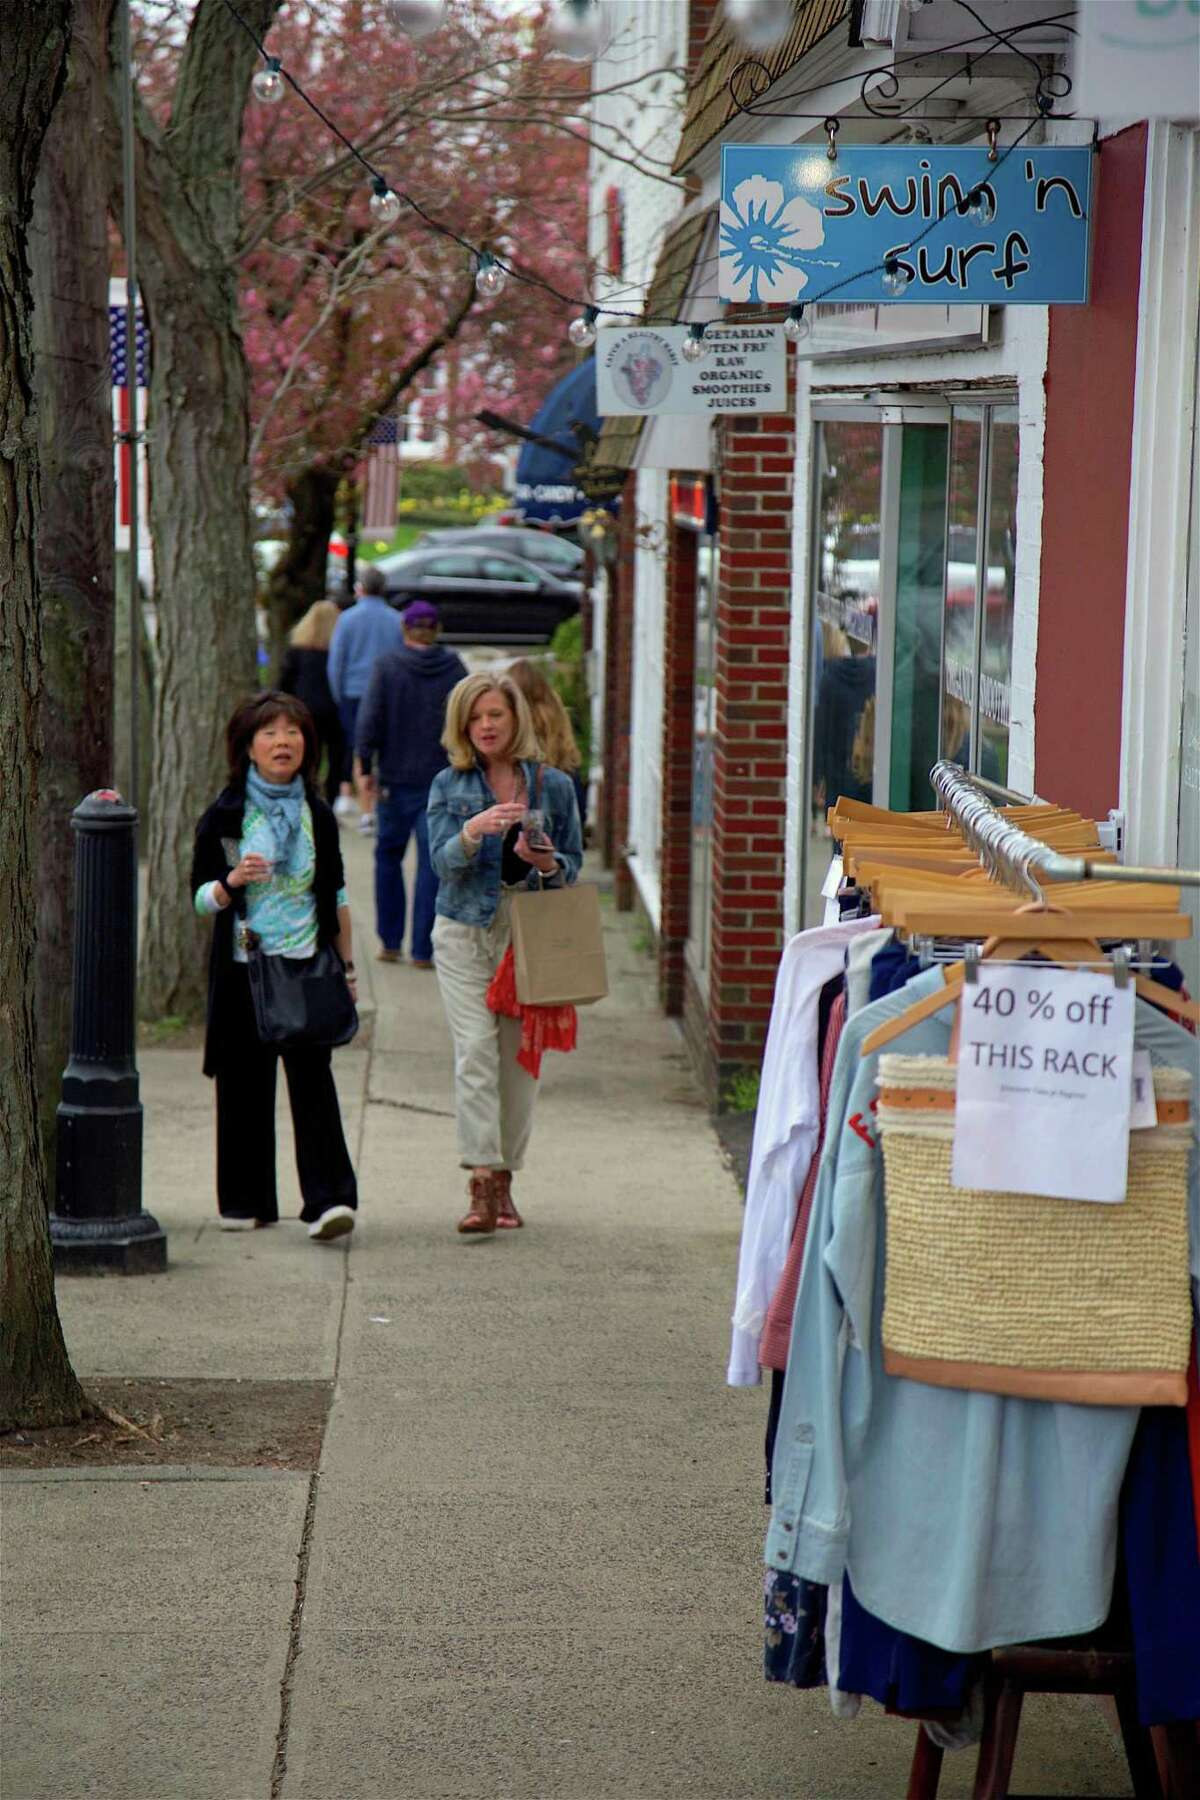 Discounts were in the offing, as in this shop along Unquowa Road, at the downtown Fairfield Shop & Stroll on Thursday, April 25, 2019, in Fairfield, Conn.